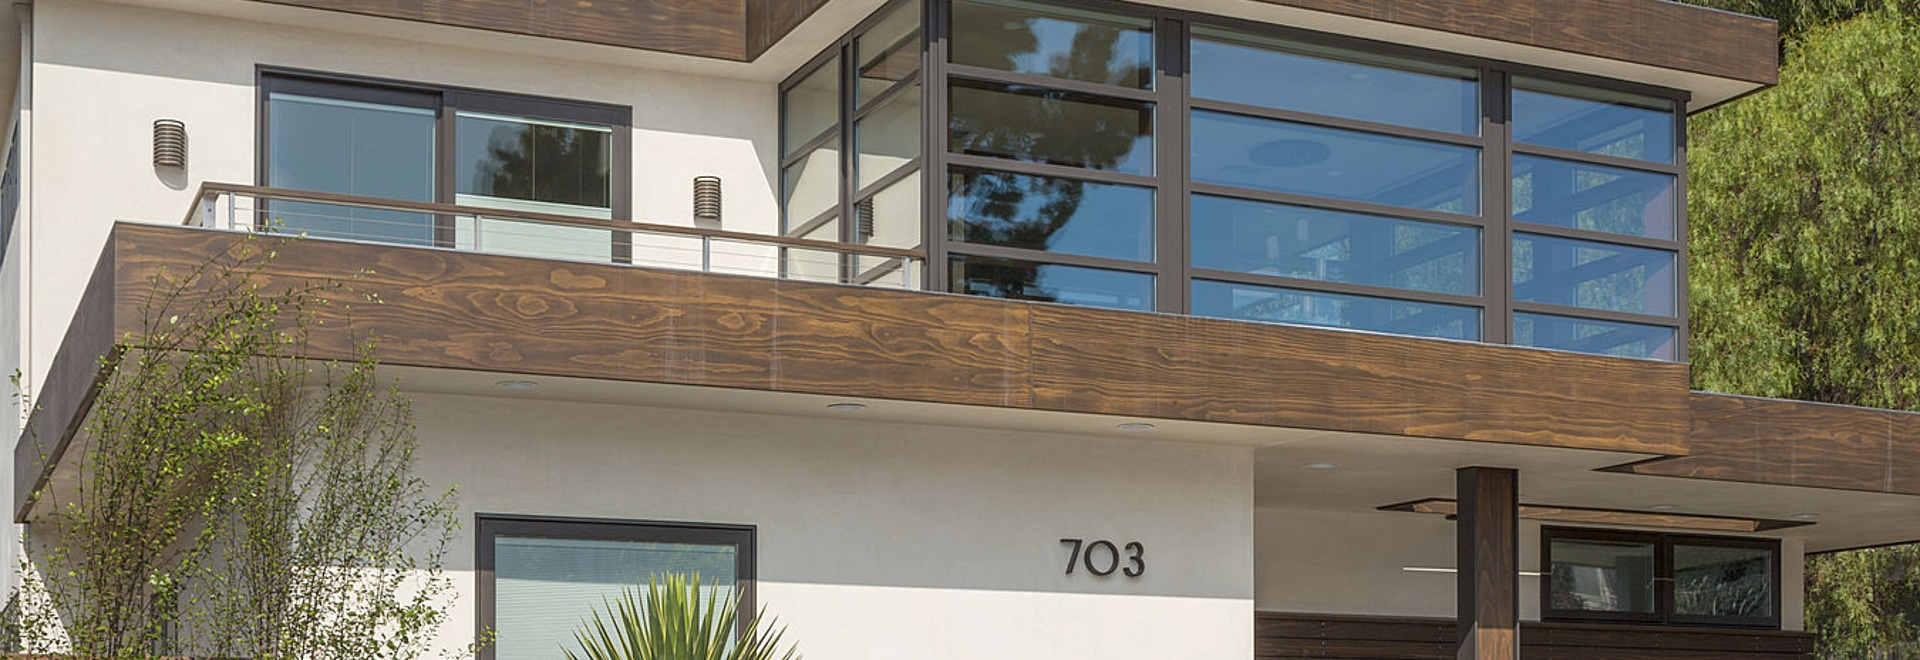 Sustainable Accoya Home Receives Platinum Leed Certification